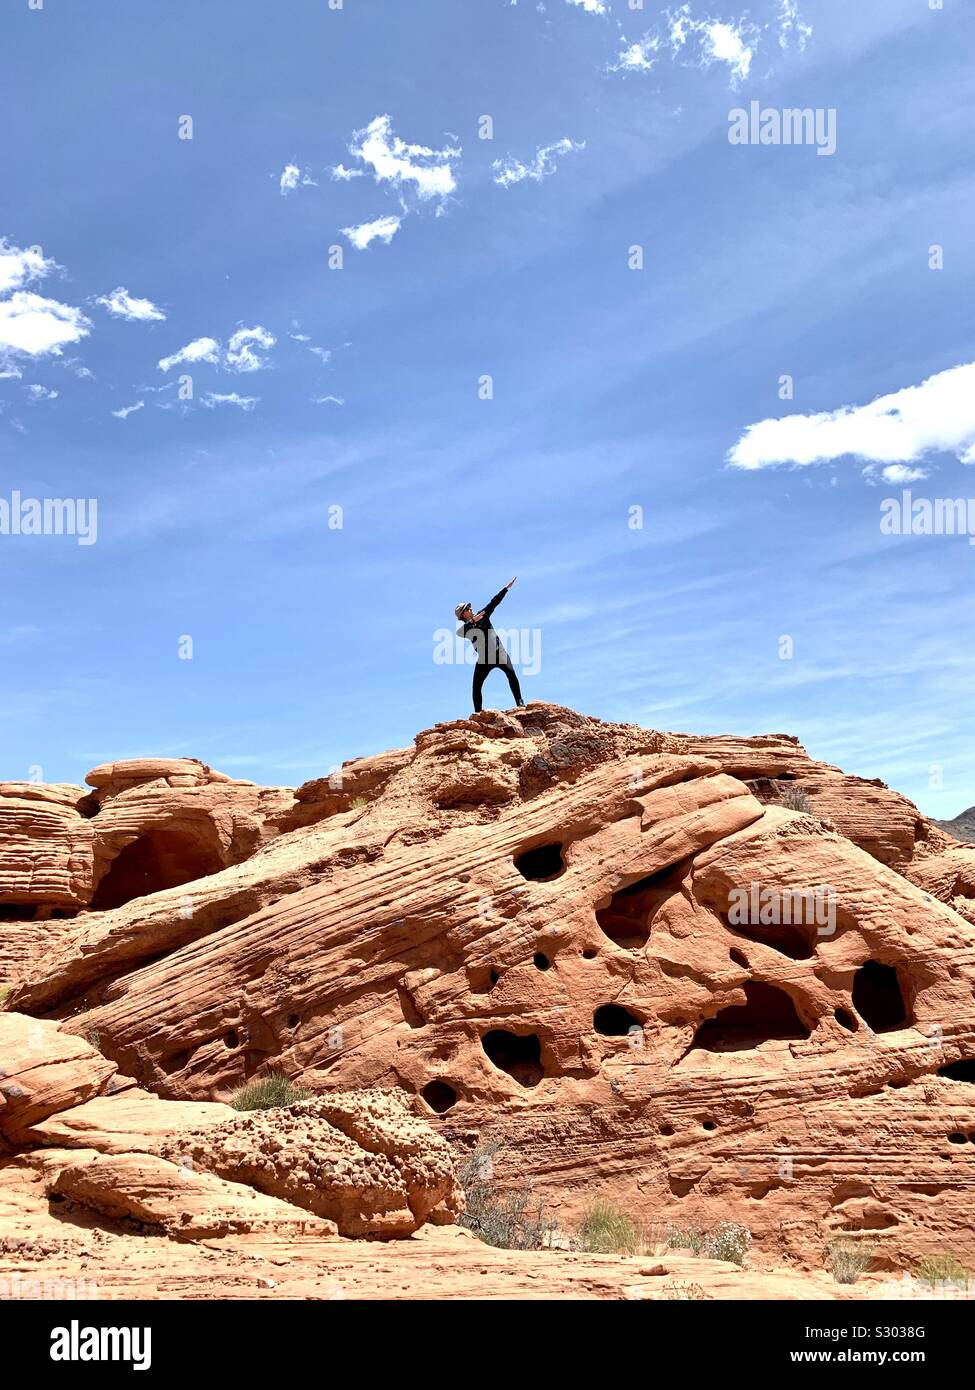 Posing in Valley of Fire, Nevada, USA. Stock Photo